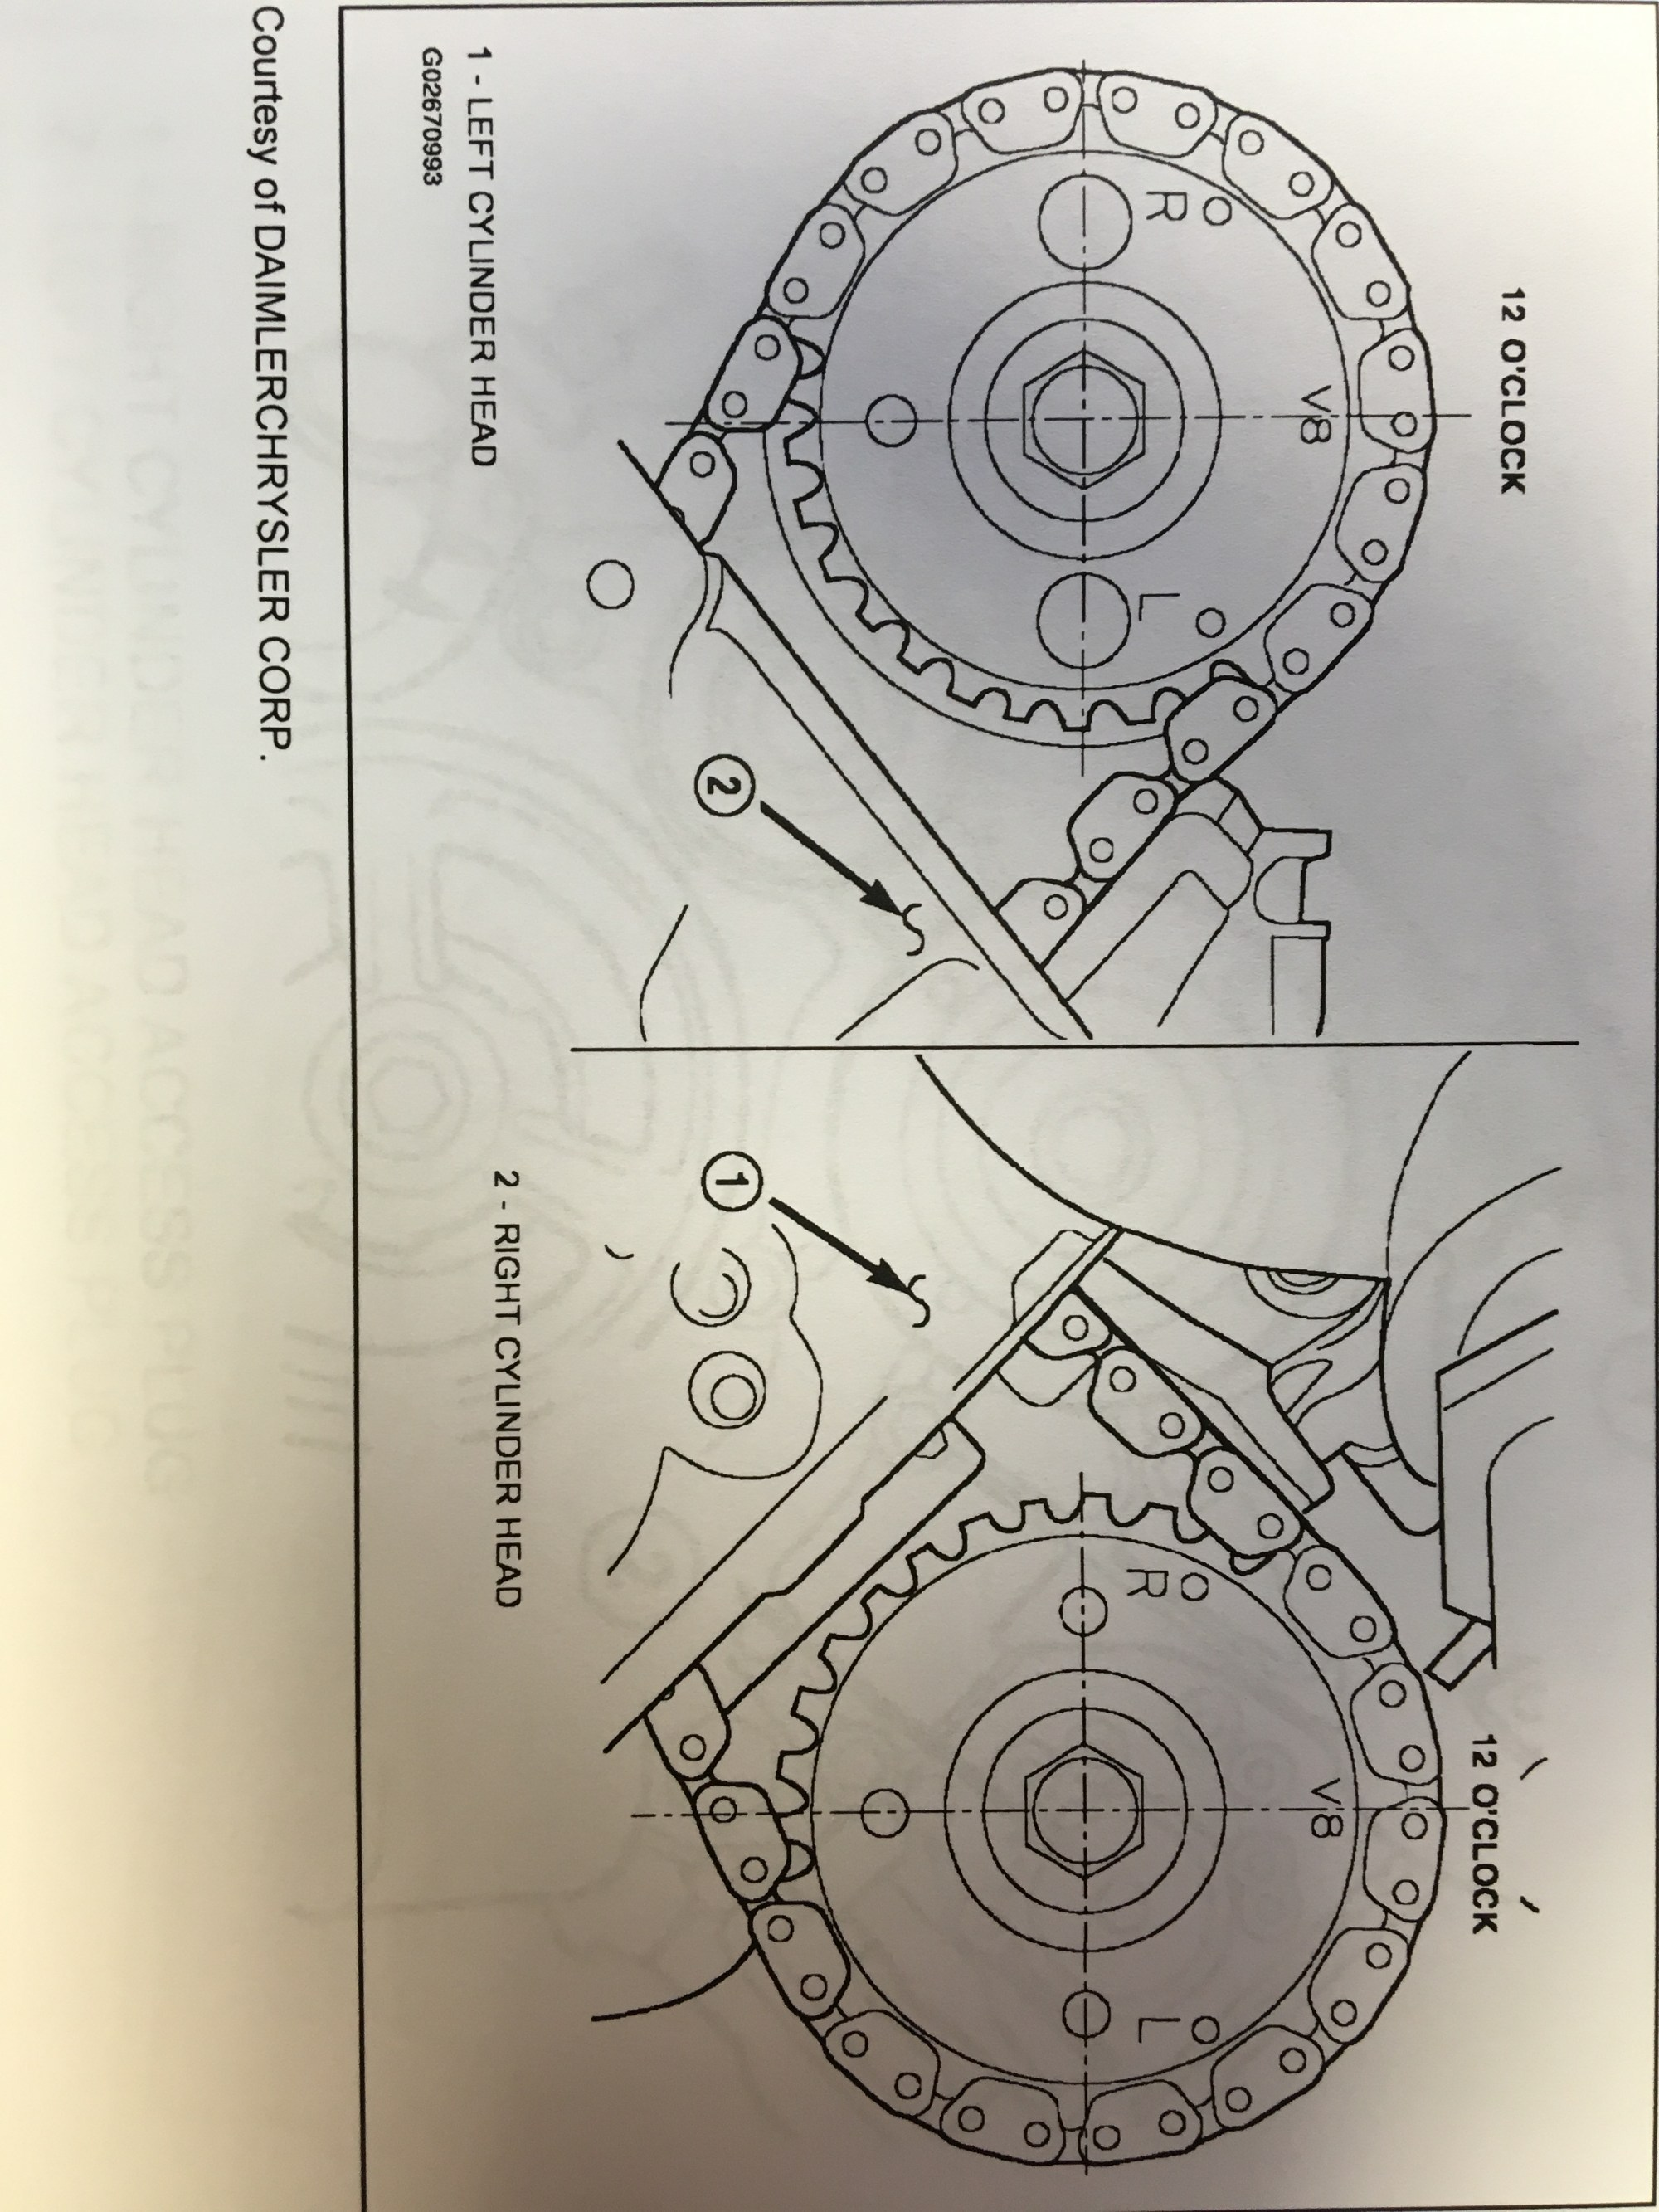 hight resolution of remove the crankshaft damper bolt usually have to slightly readjust crankshaft pulley afterward and crankshaft damper using a damper puller and then